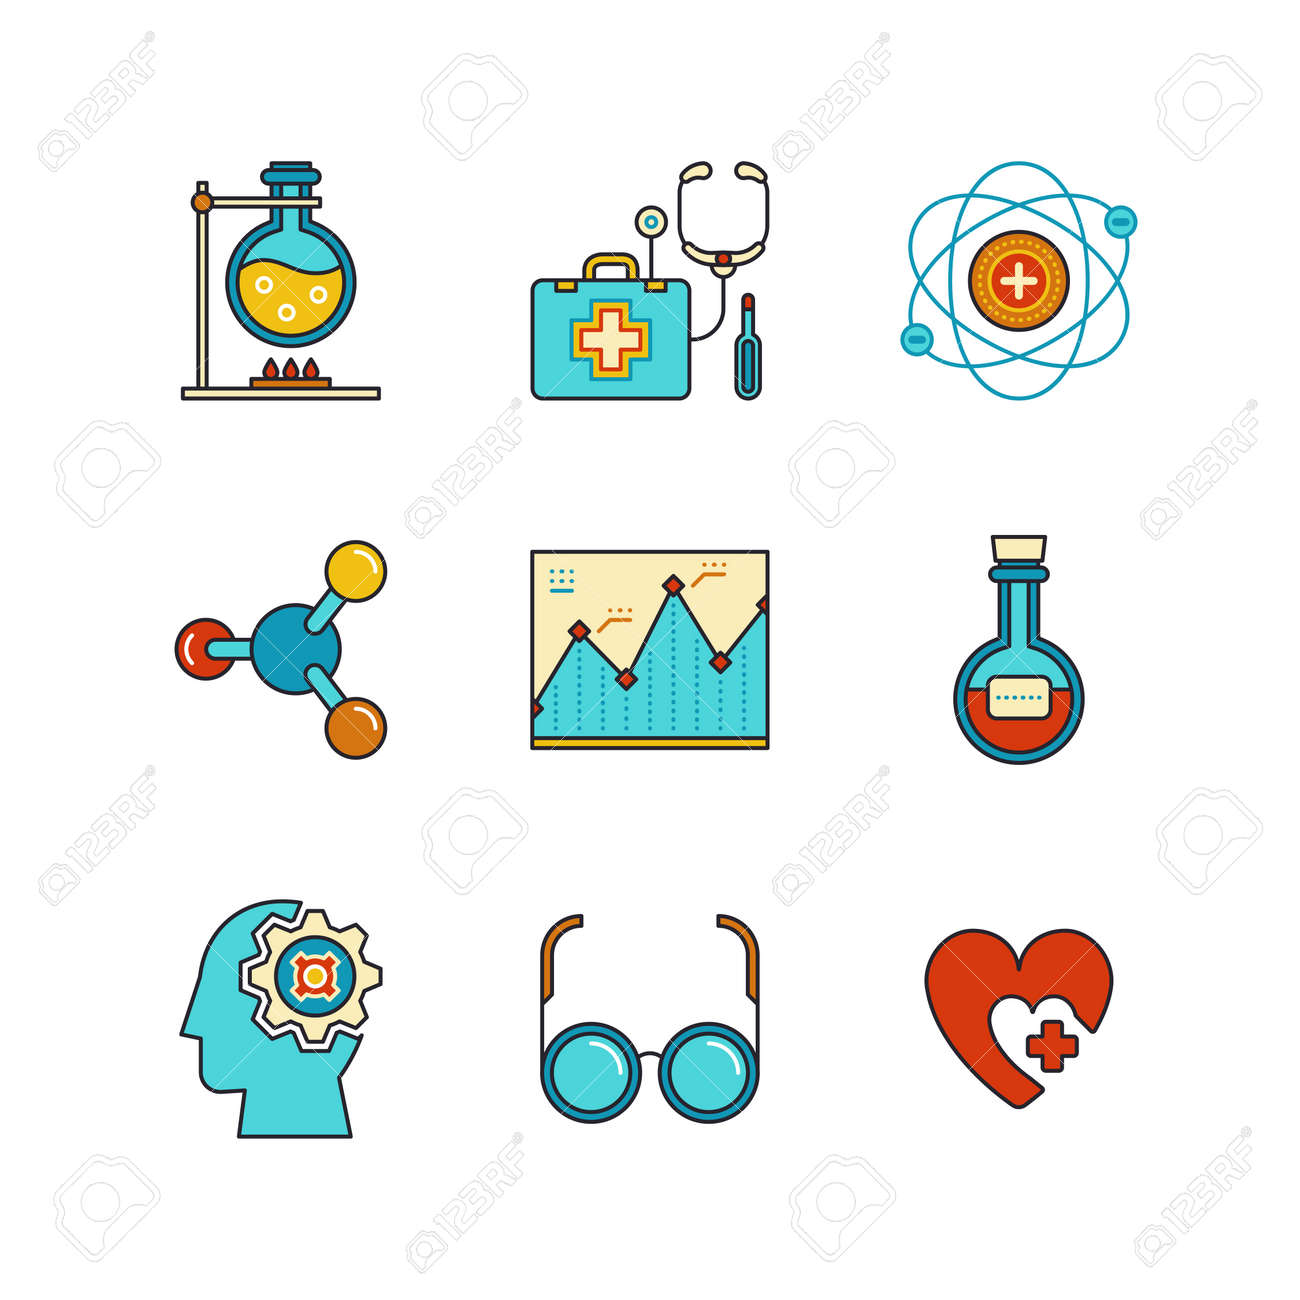 hight resolution of chemical flask doctors support first aid kit eye glasses chemistry atom heart shape diagram and psychology